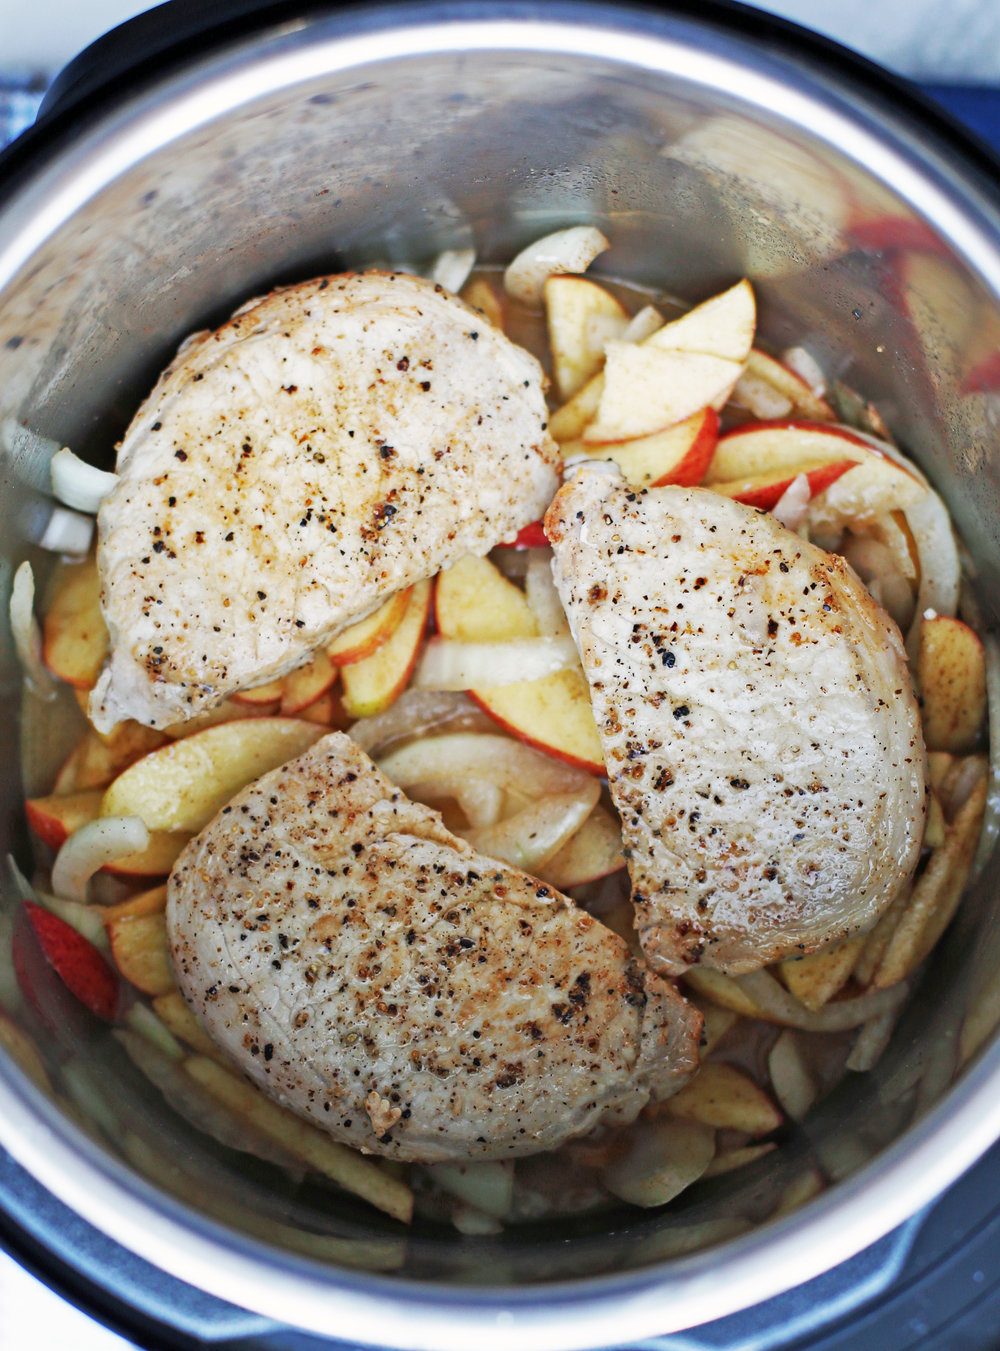 Sliced apples, sliced onions, ground cinnamon, lemon juice, salt, and chicken broth that's topped with three browned boneless pork chops in an Instant Pot.